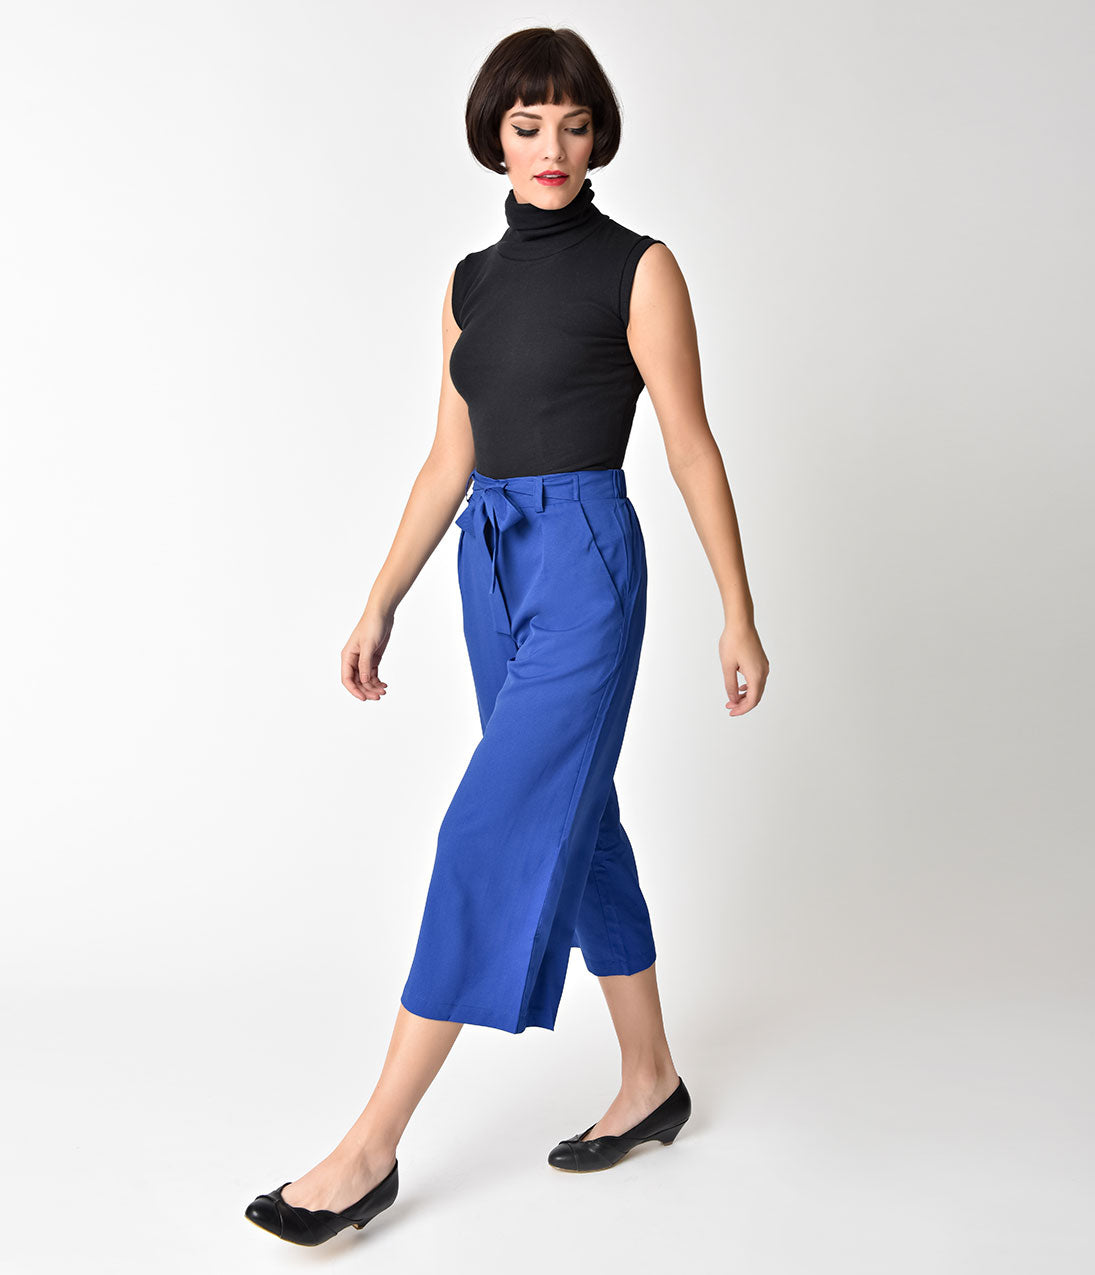 1950s Pants & Jeans- High Waist, Wide Leg, Capri, Pedal Pushers Royal Blue Bow Belt Capri Cut Culotte Pants $38.00 AT vintagedancer.com